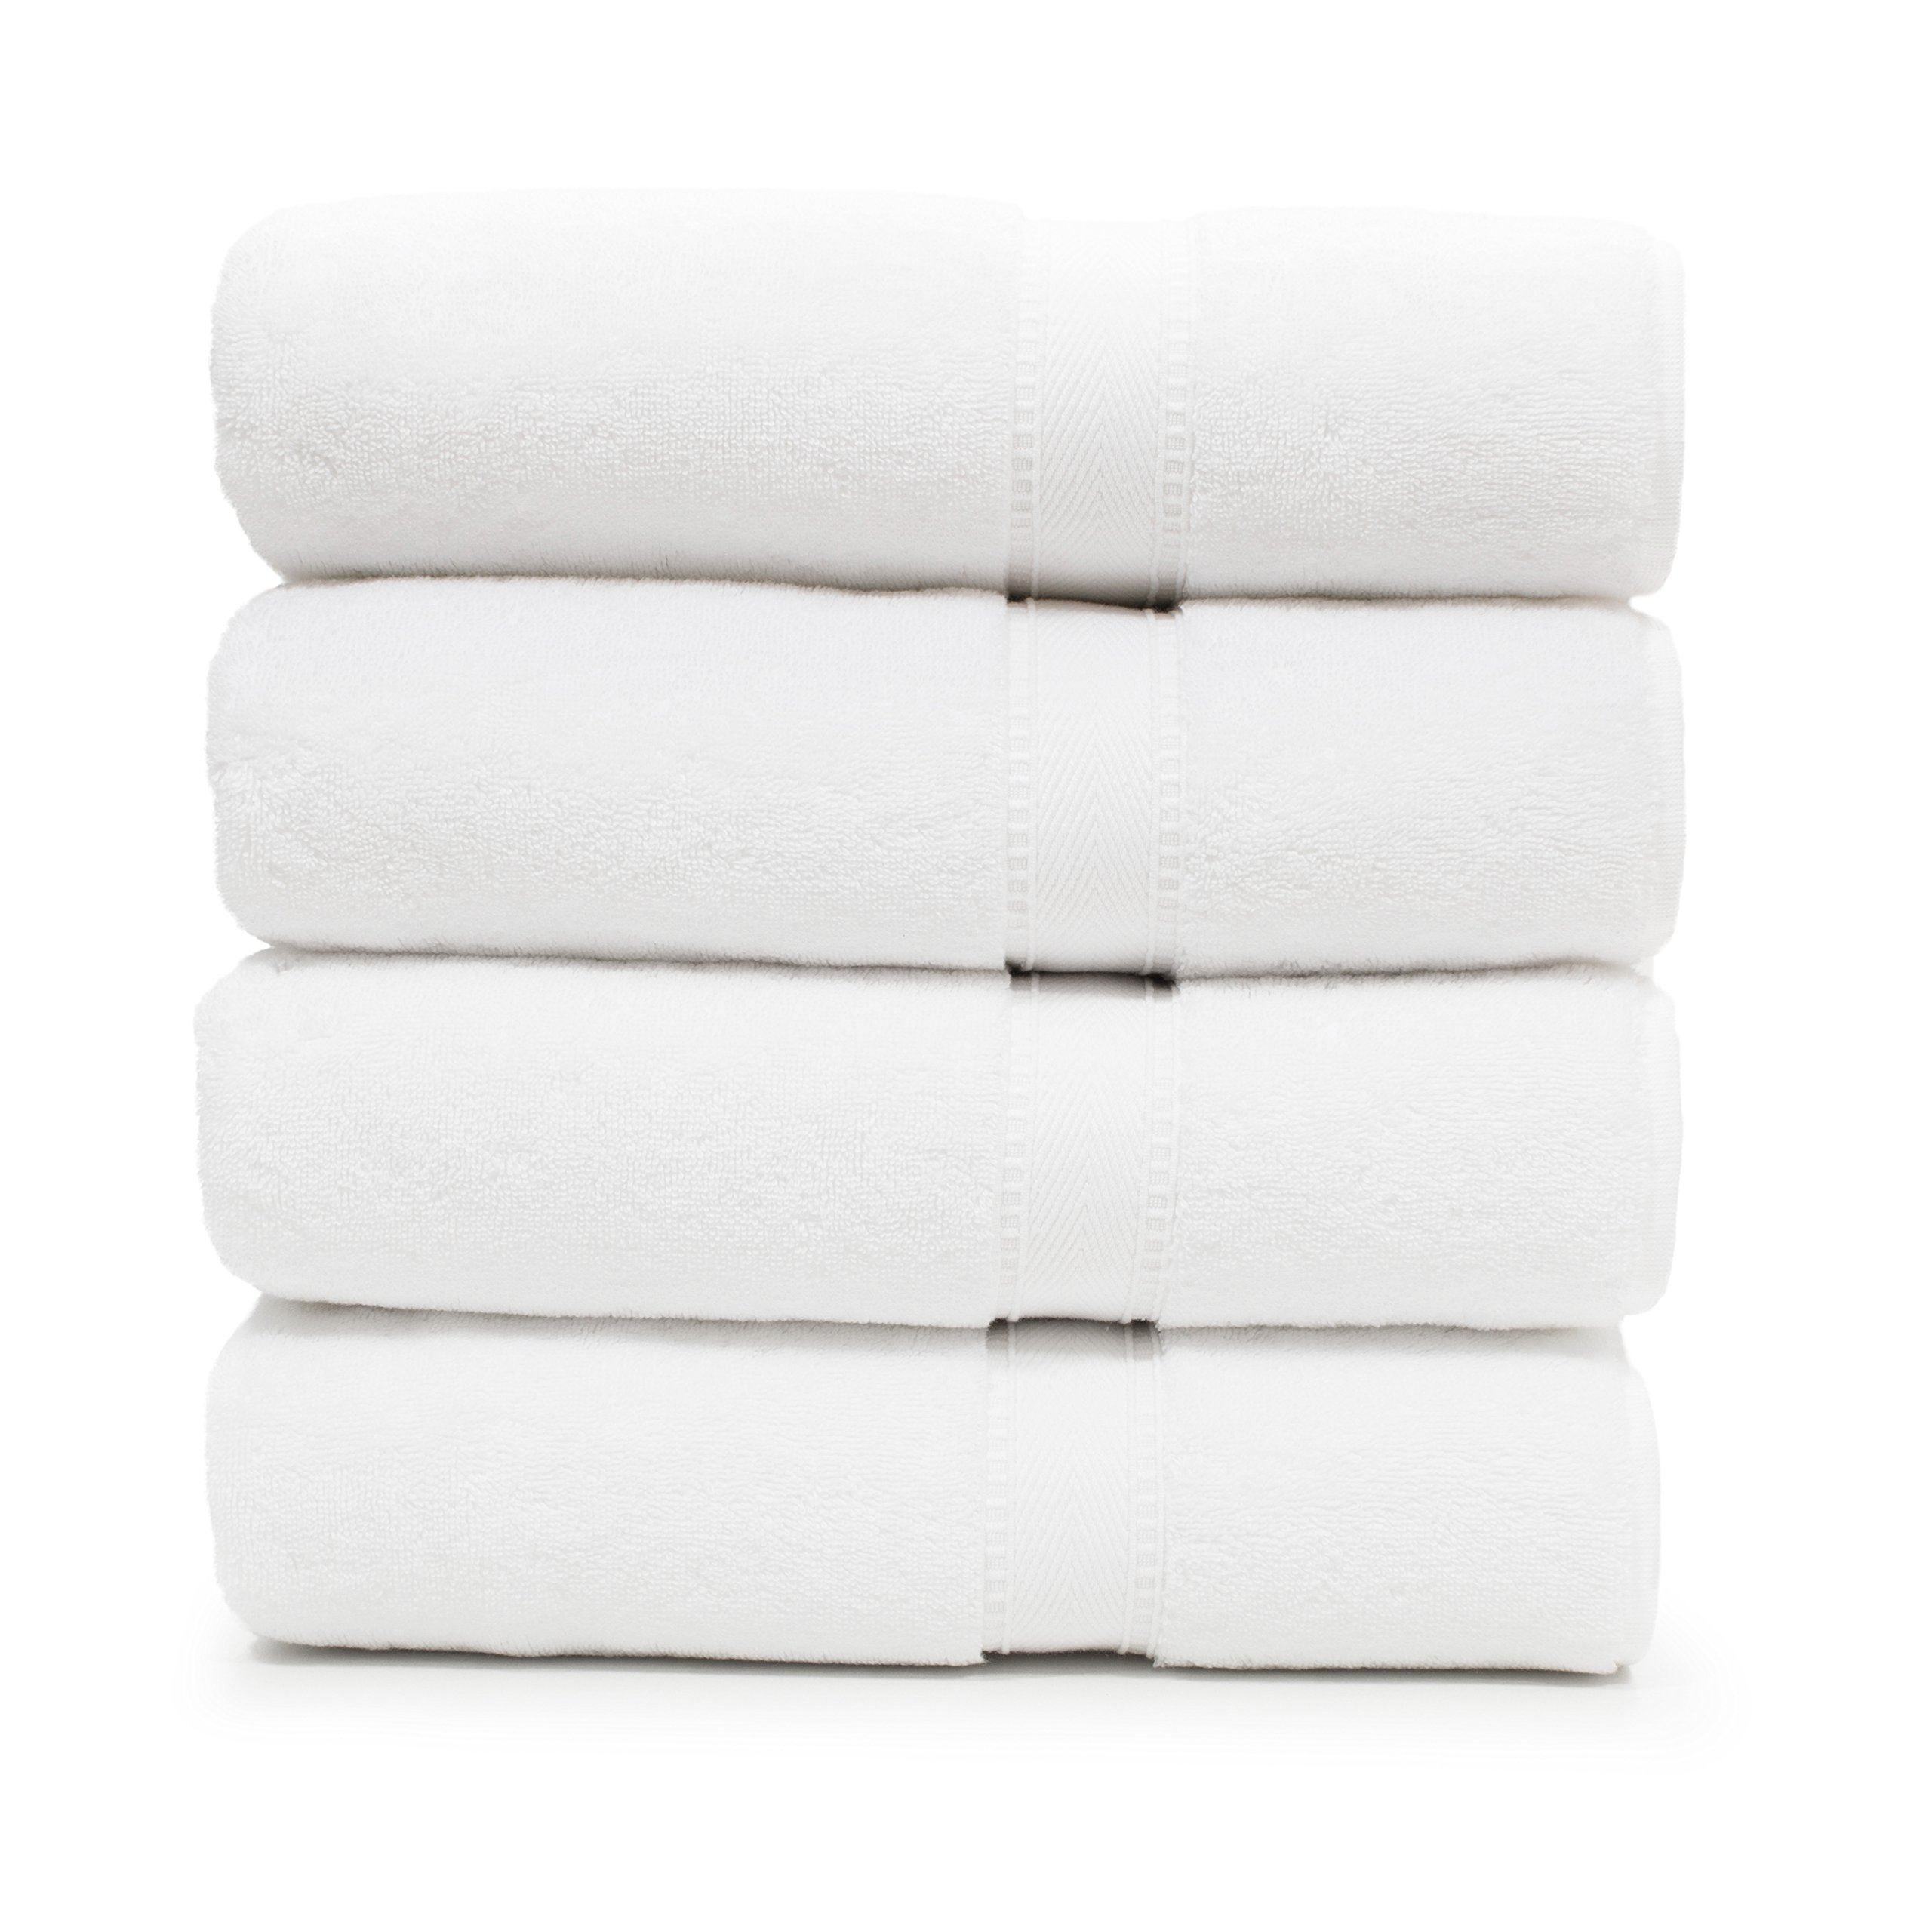 Linum Home Textiles SN00-4BT Bath Towel, White